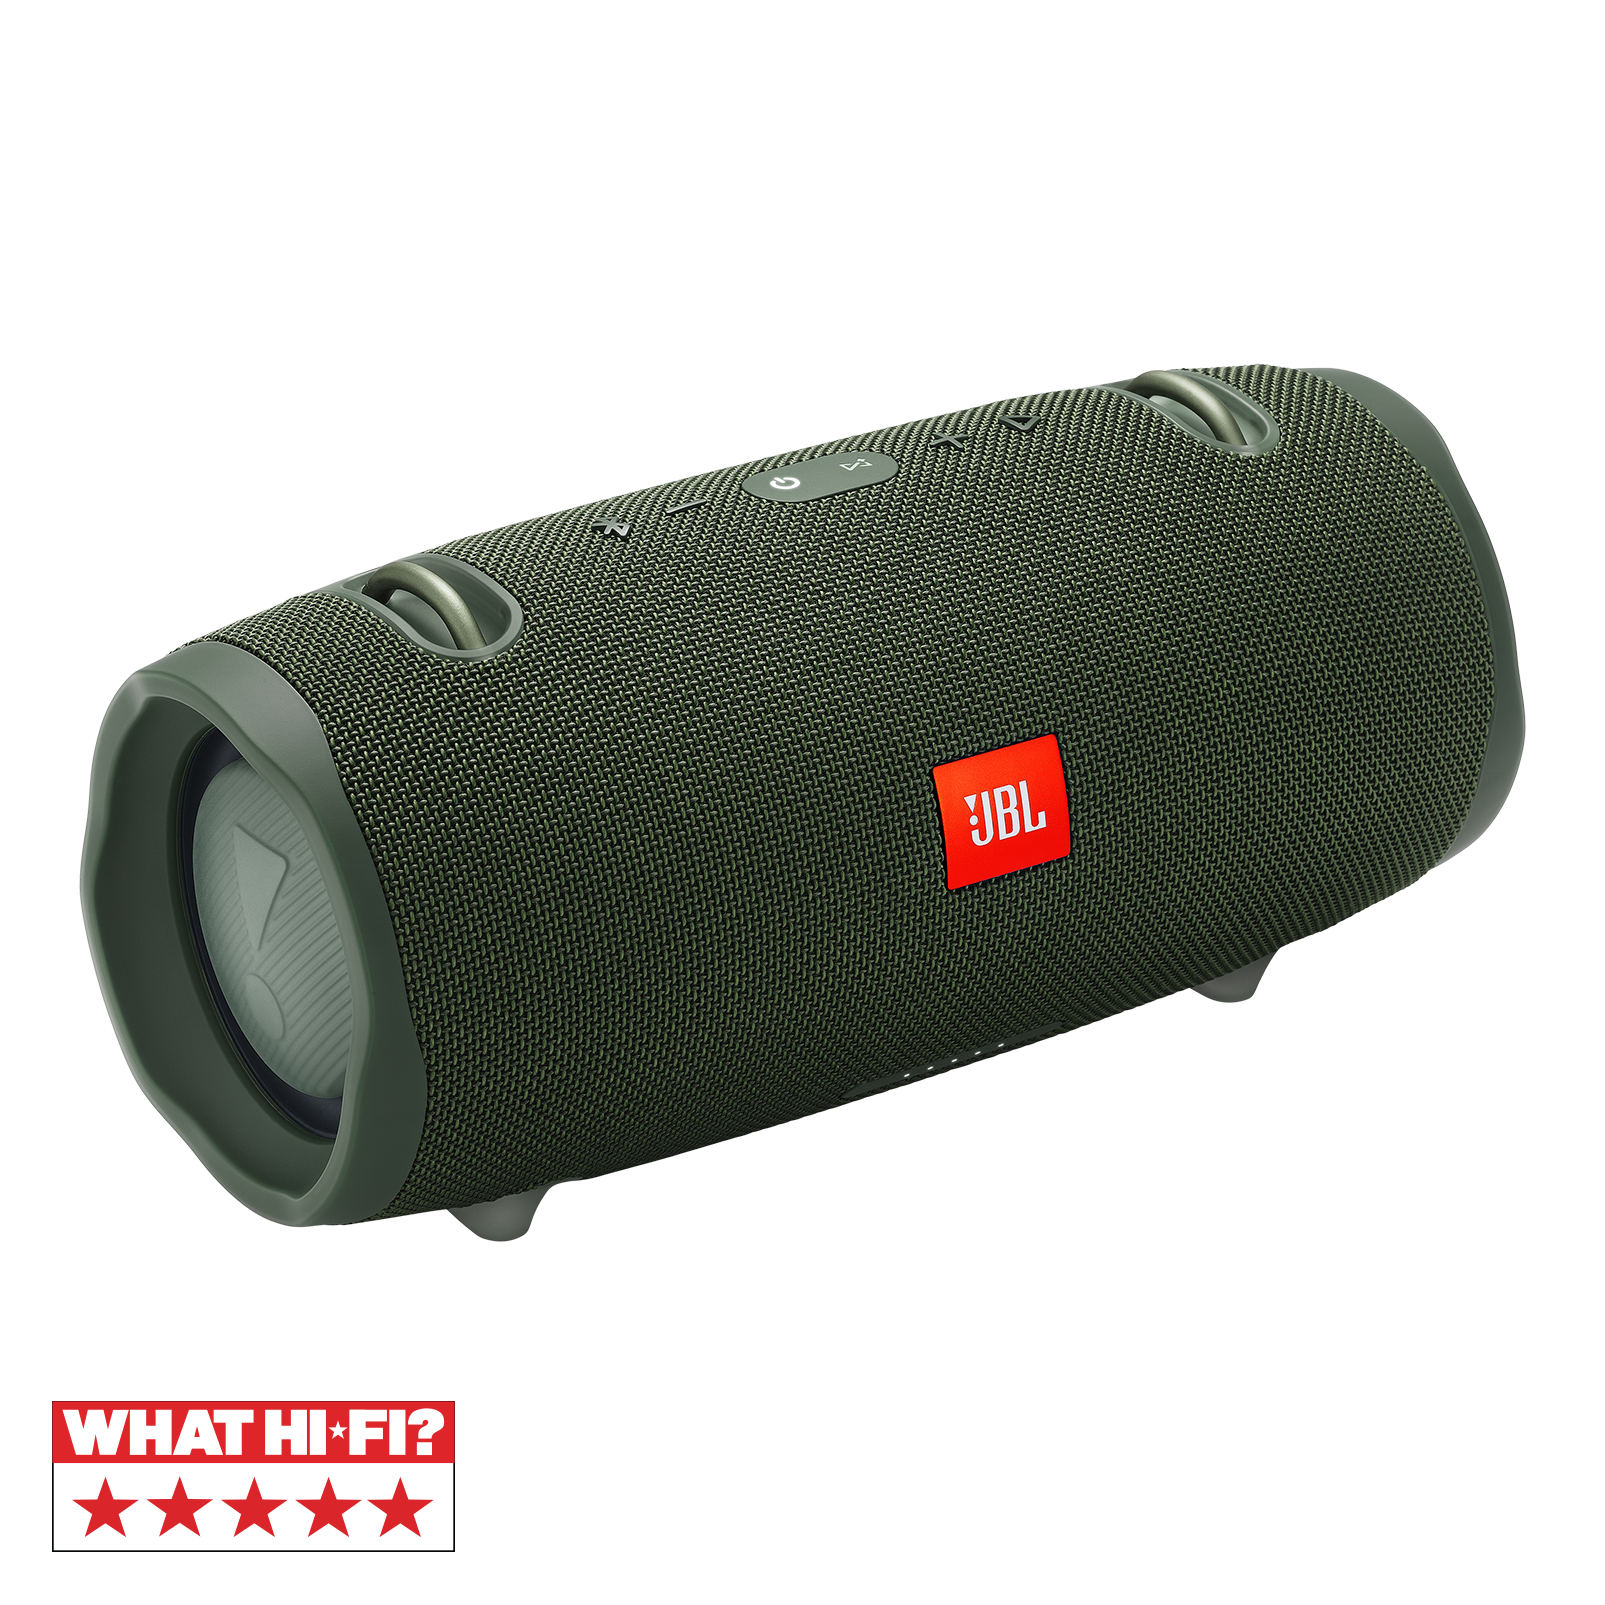 JBL Xtreme 2 refurbished Forest Green